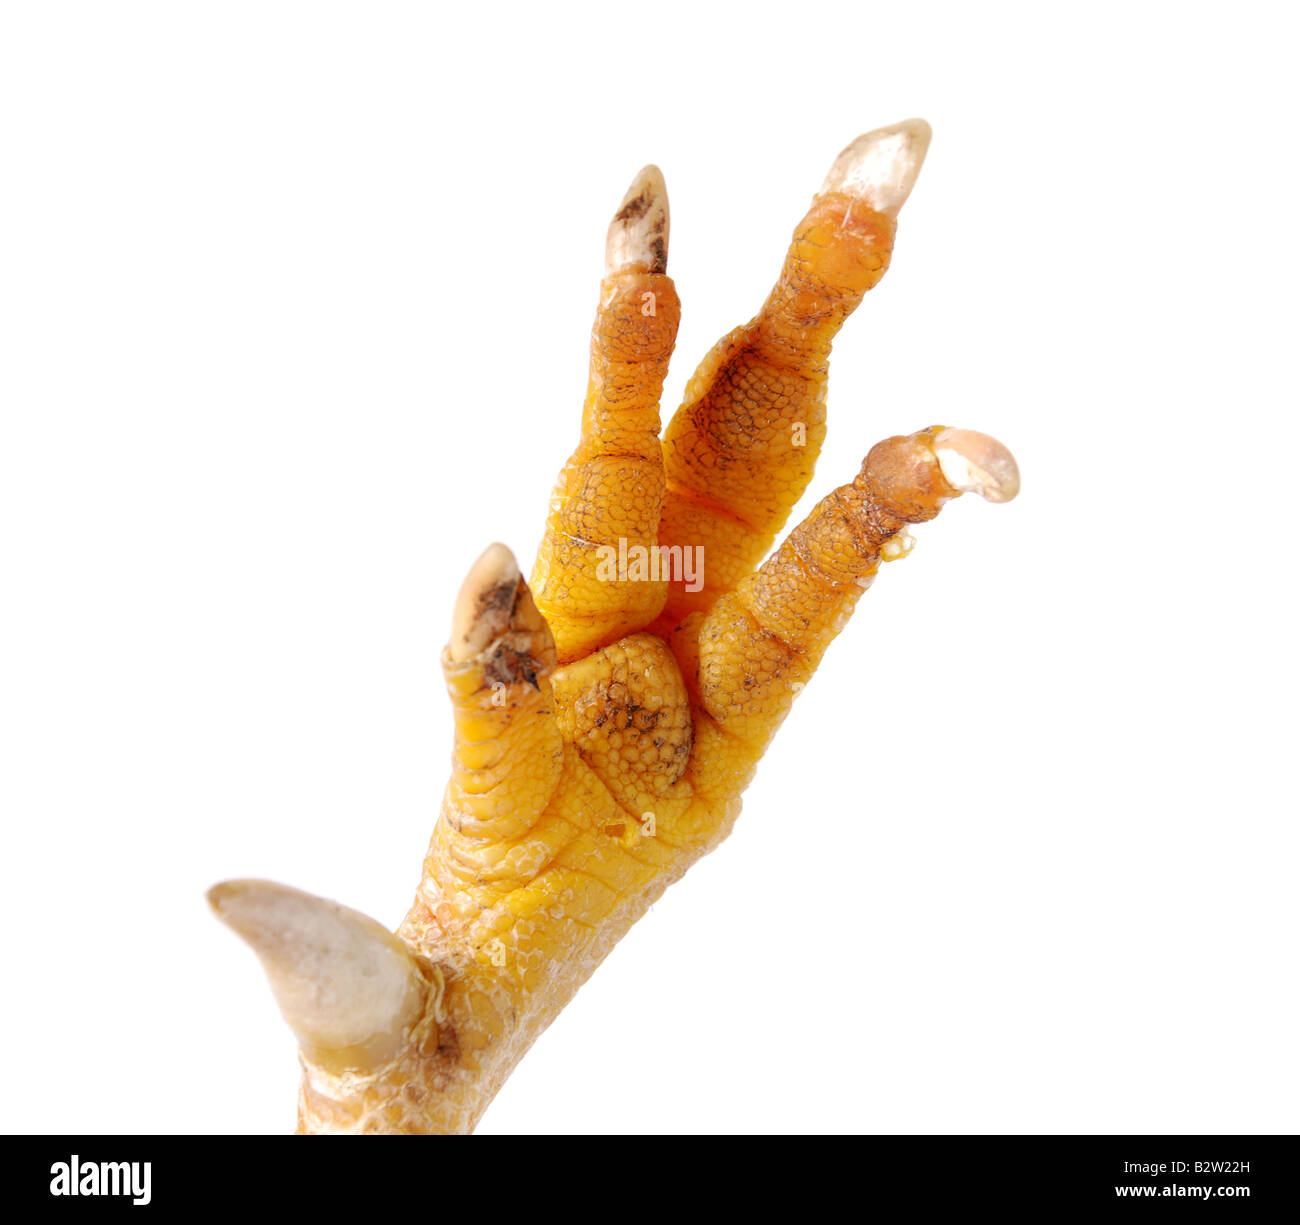 Chicken Foot Stock Photos & Chicken Foot Stock Images - Alamy